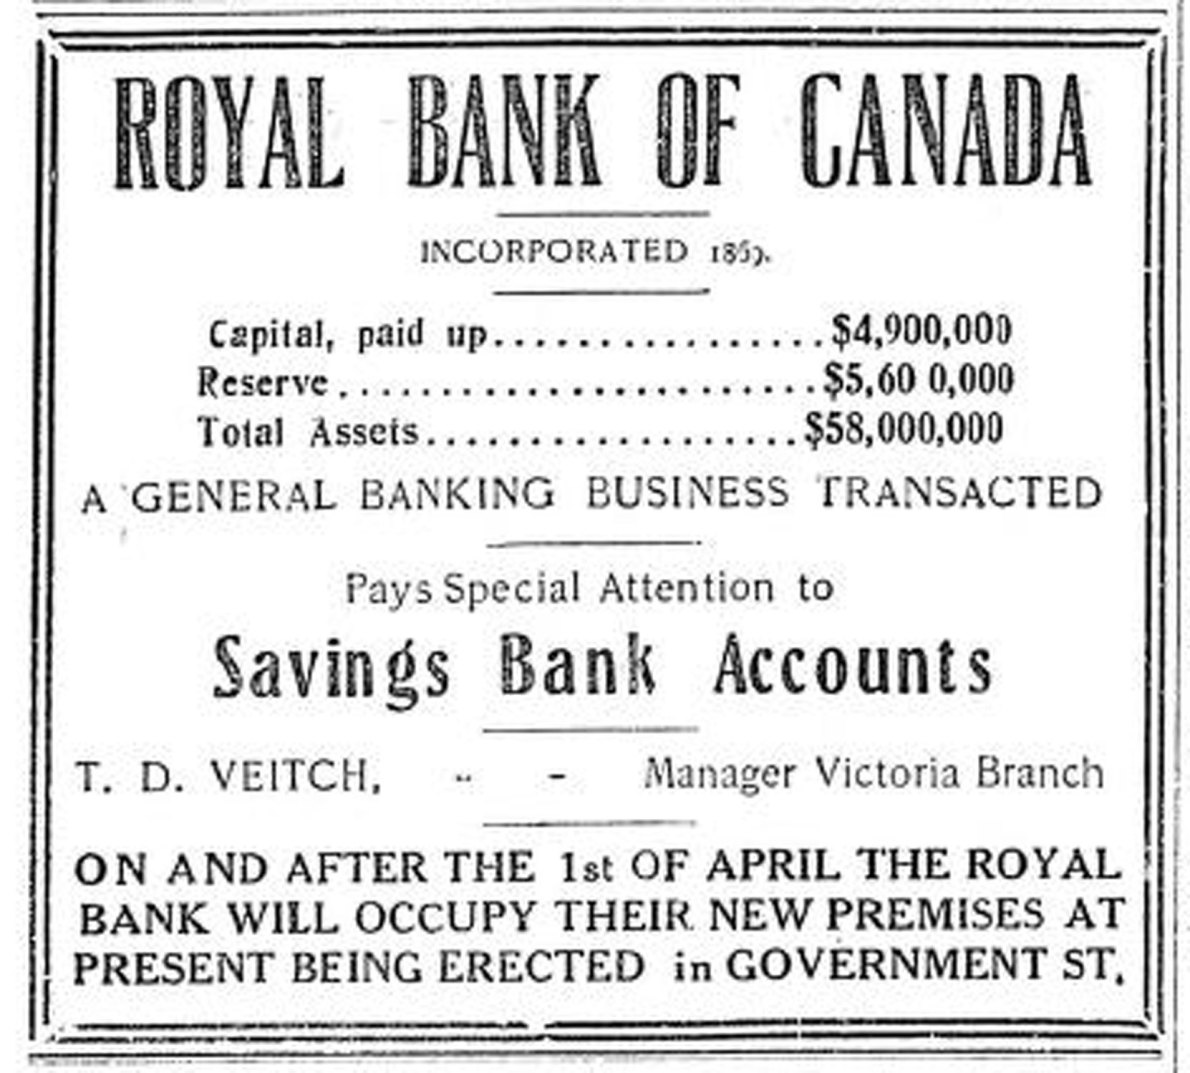 1909 advertisement for Royal Bank of Canada, Victoria Branch. The